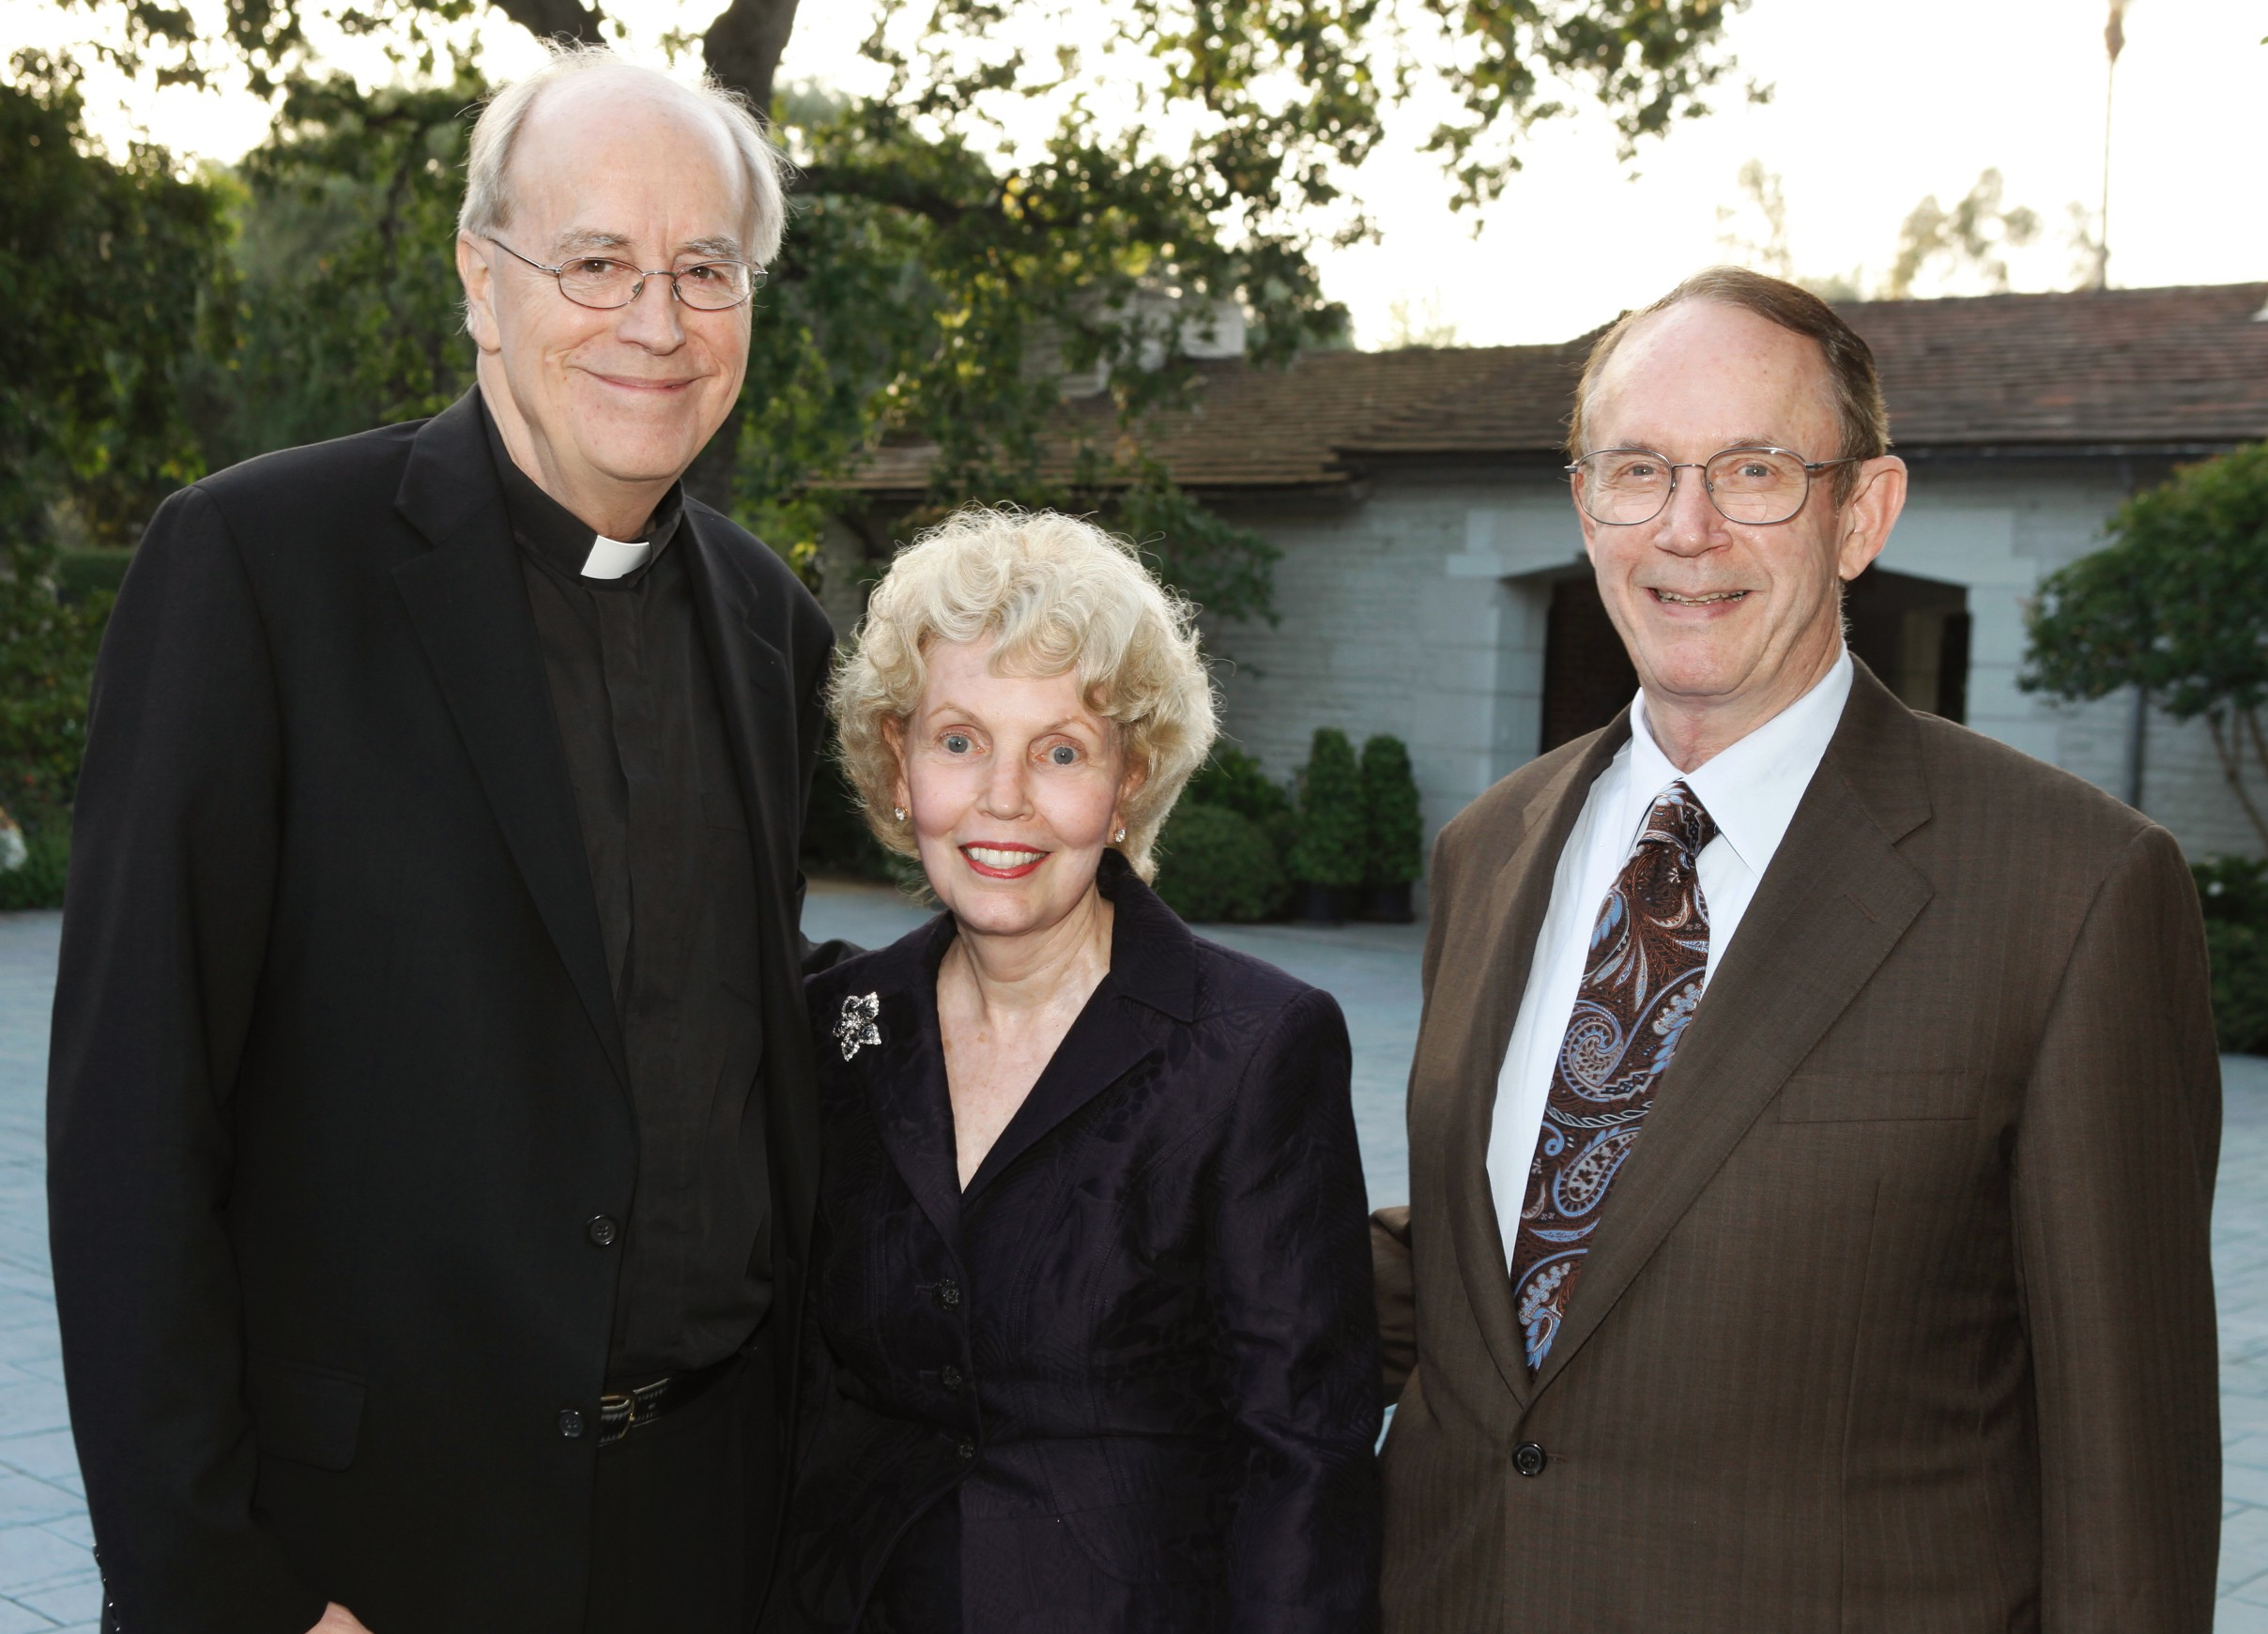 The gift creates the Steven and Kathryn Sample Endowment for Ecumenism. The Samples are pictured here with Father James Heft. (USC Photo/Steve Cohn)